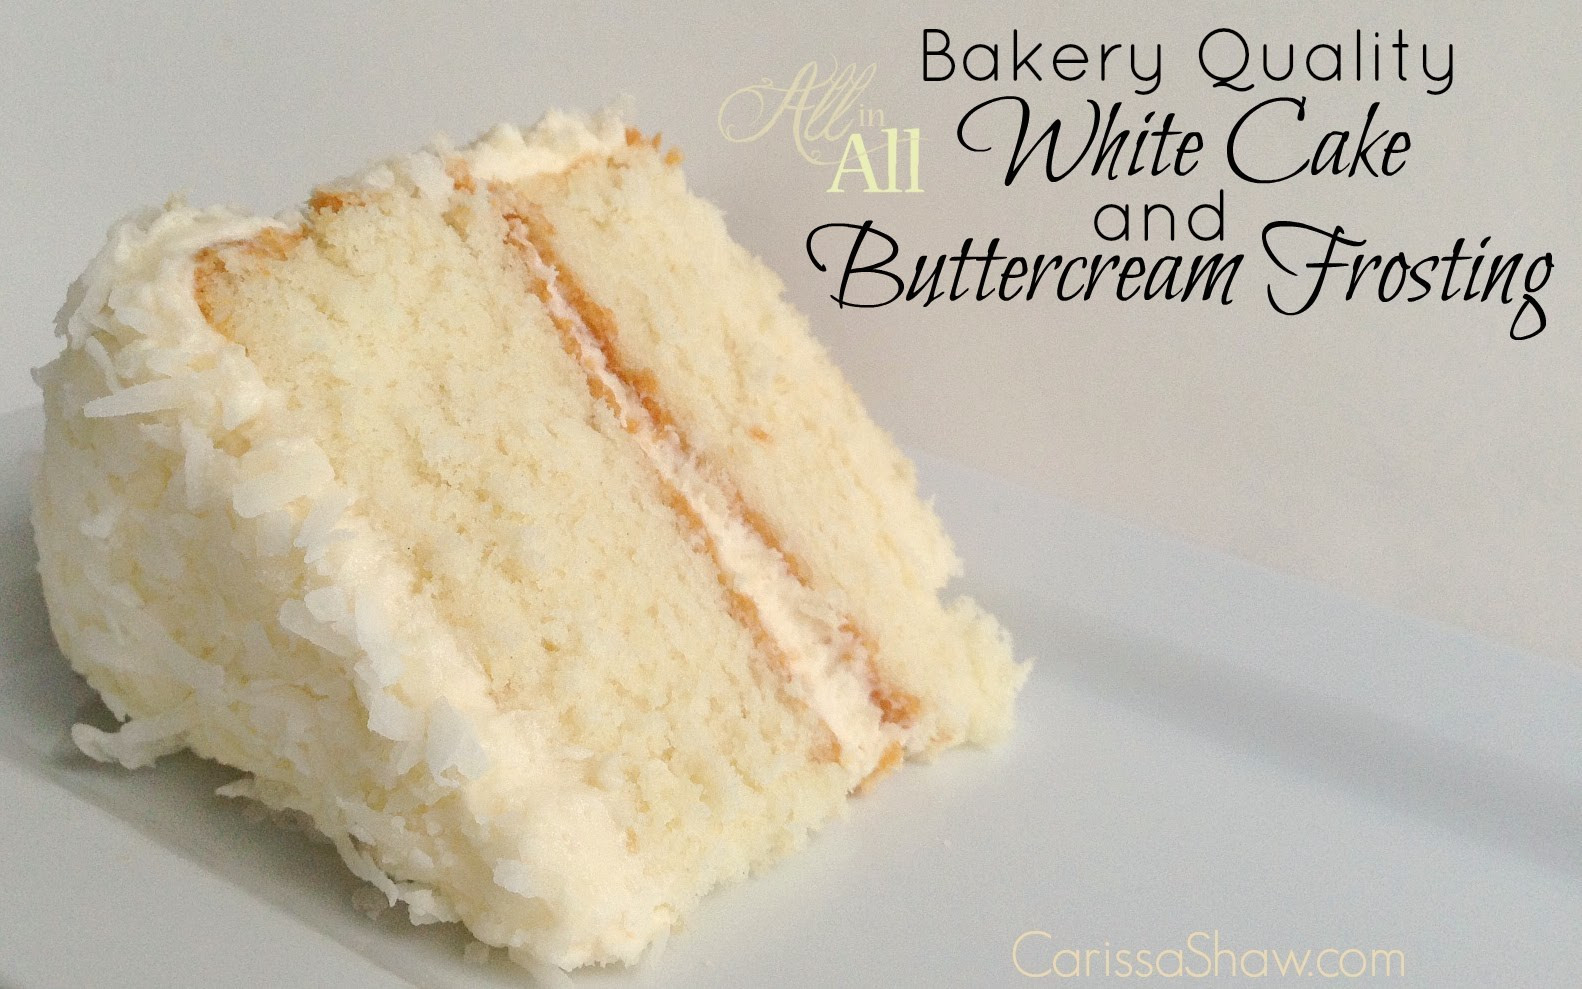 Cake Frosting Recipe  Making a Bakery Quality White Cake with Buttercream